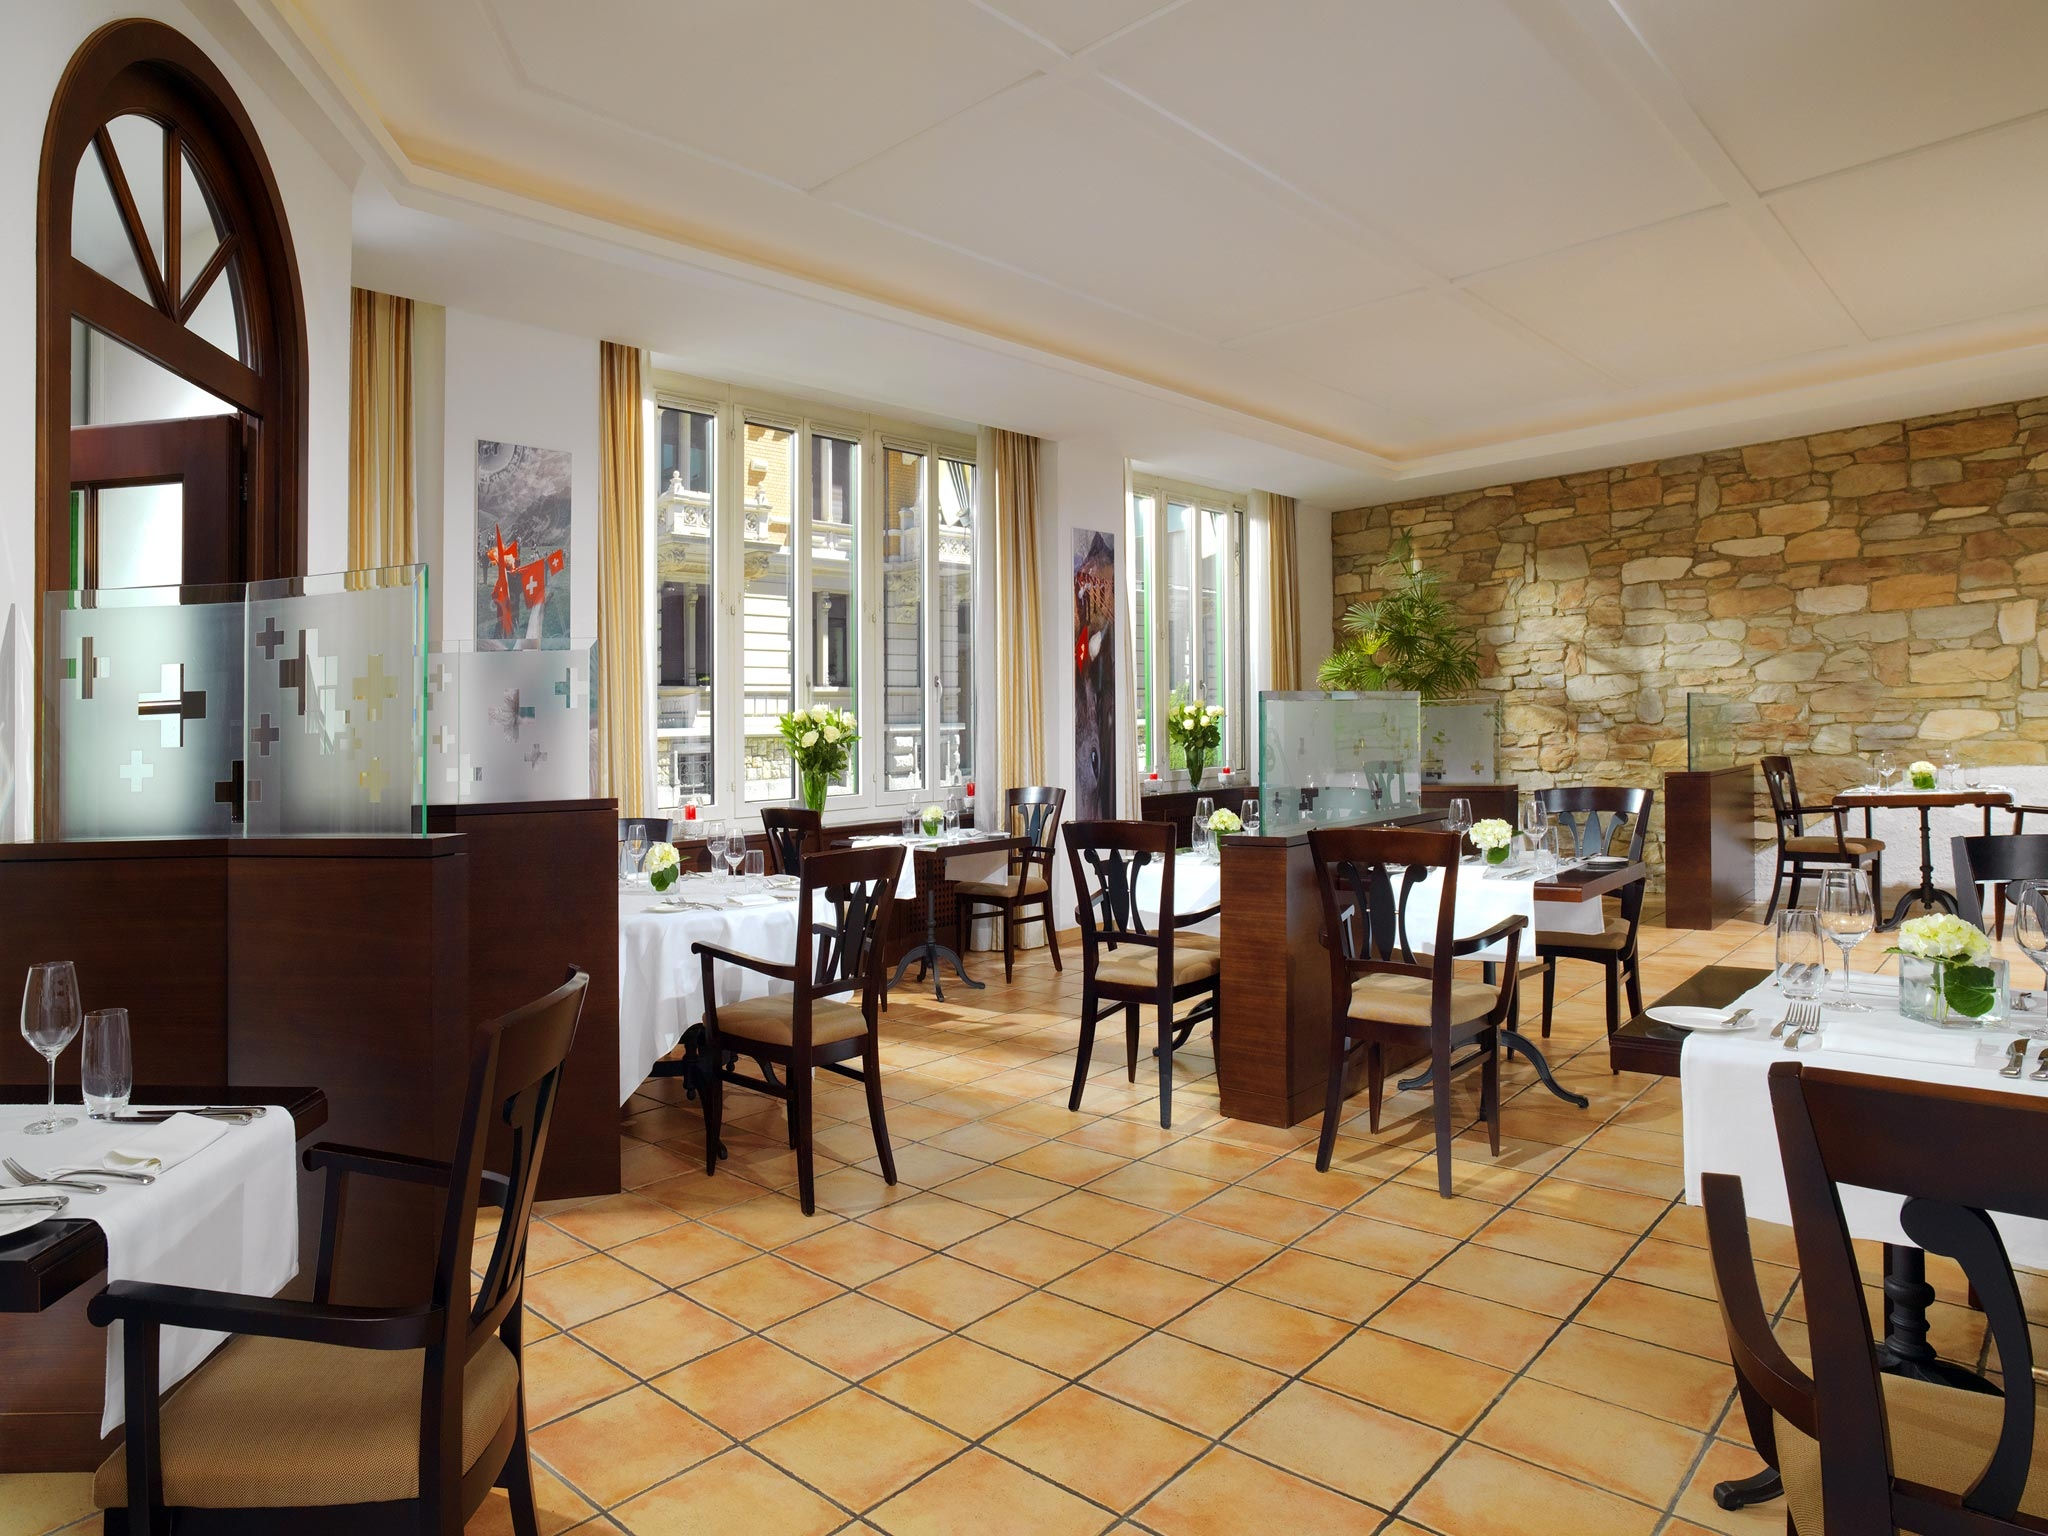 Restaurant le jardin suisse sheraton z rich neues for Restaurant le jardin mazargues